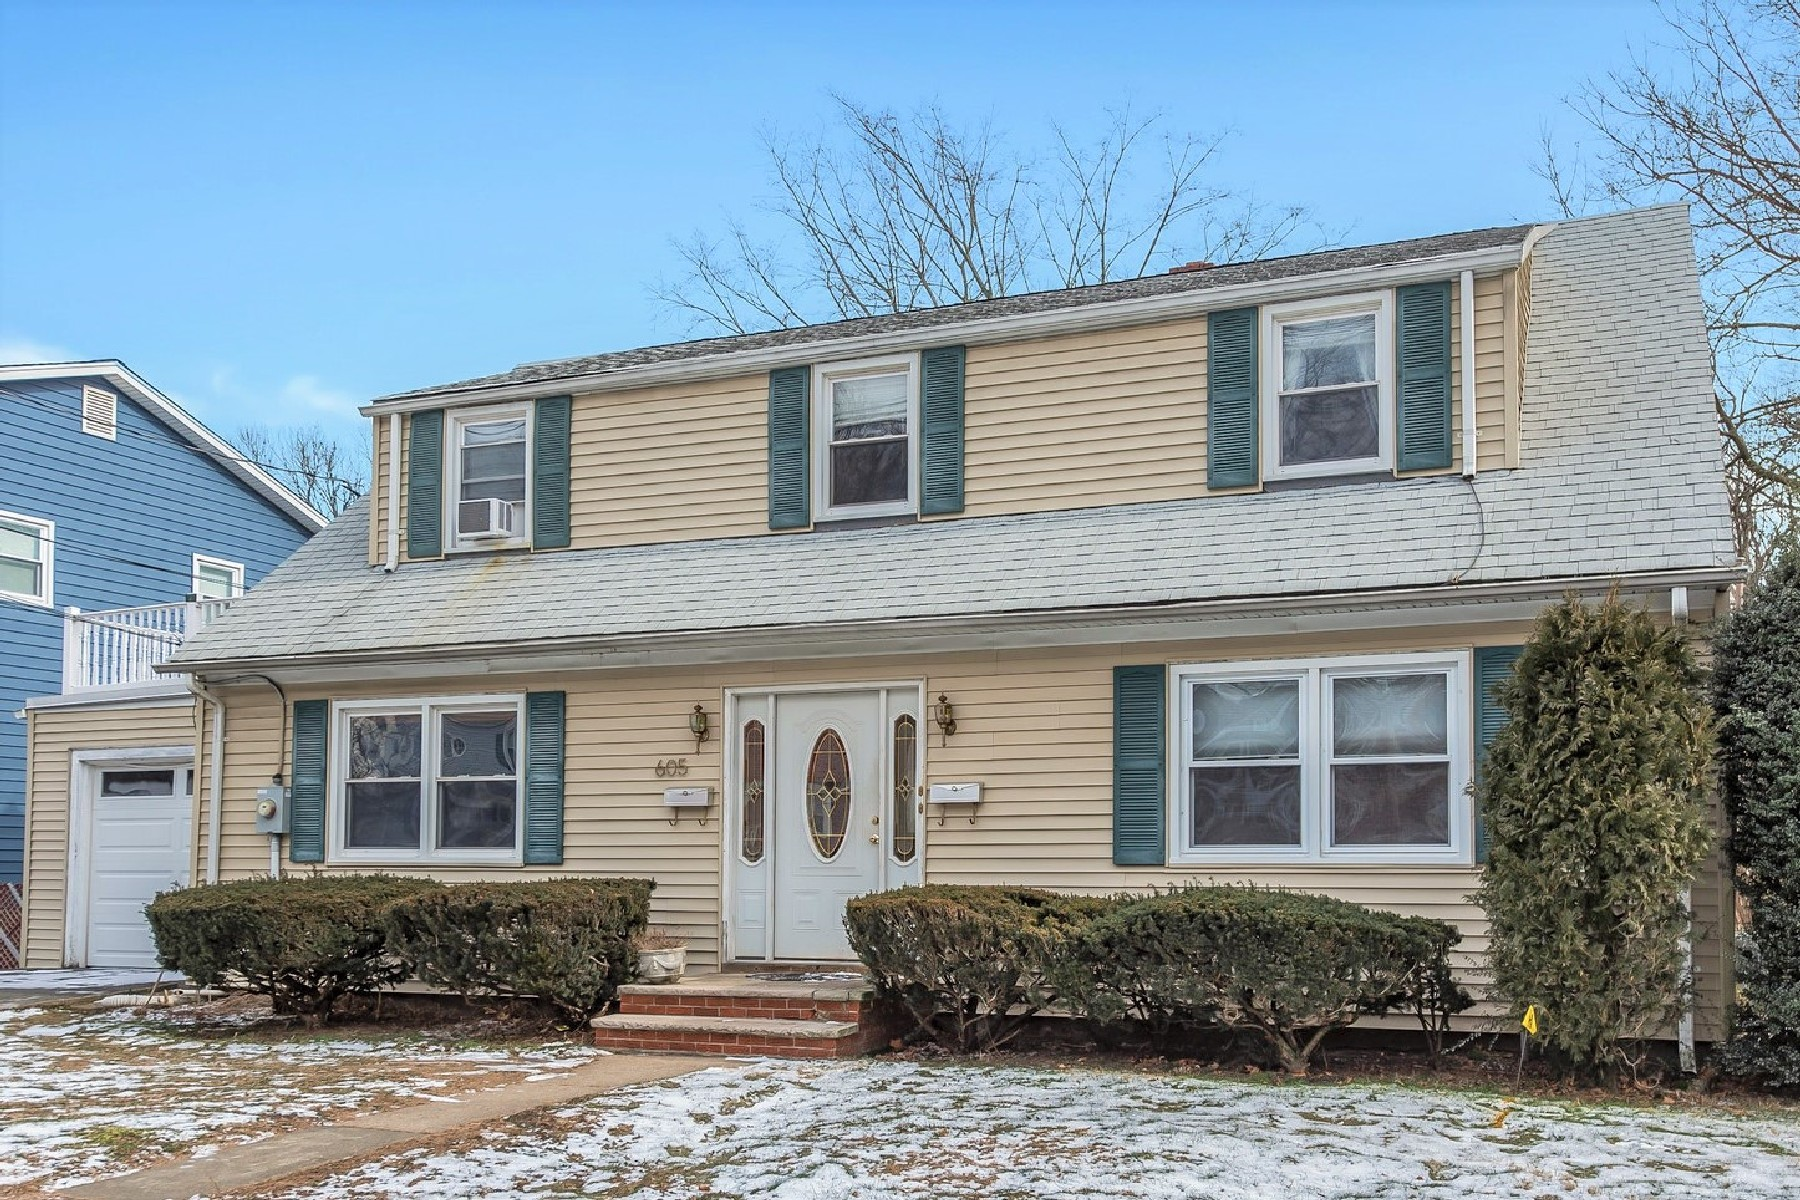 Multi-Family Homes for Sale at Rare Multi-Family in Bloomfield 605 Broad Street Bloomfield, New Jersey 07003 United States